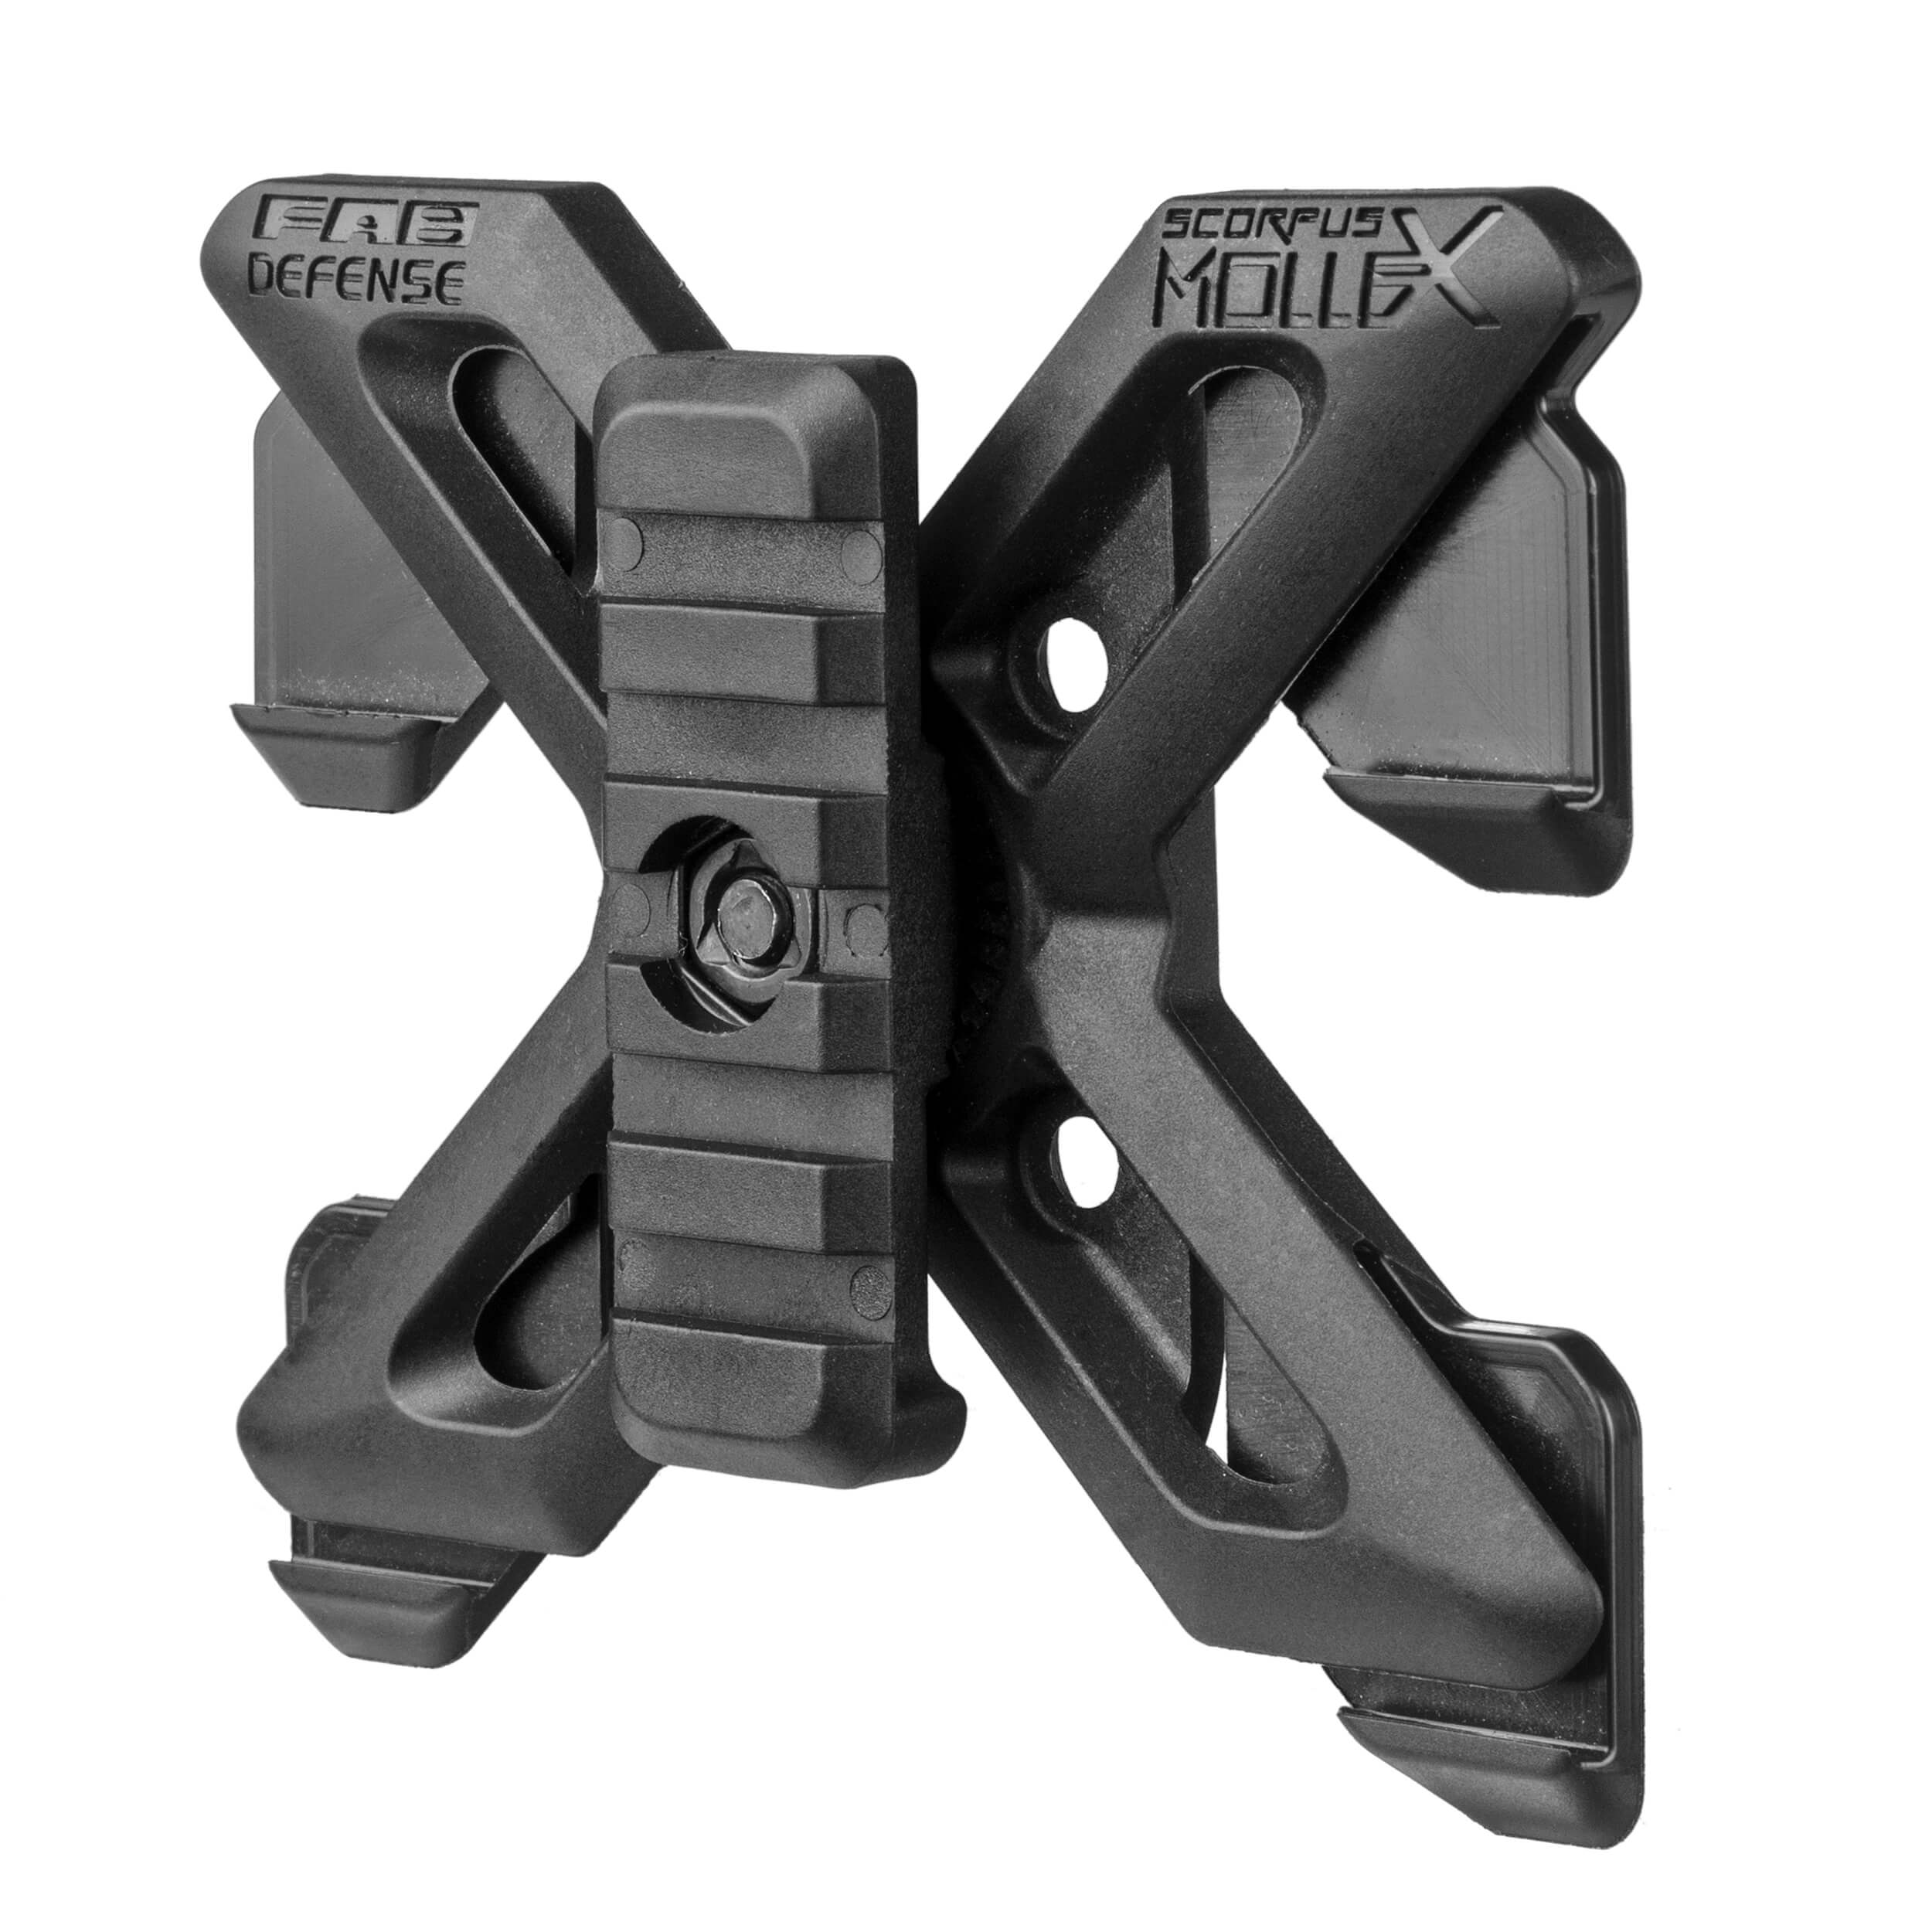 Rotation Picatinny Rail for Molle